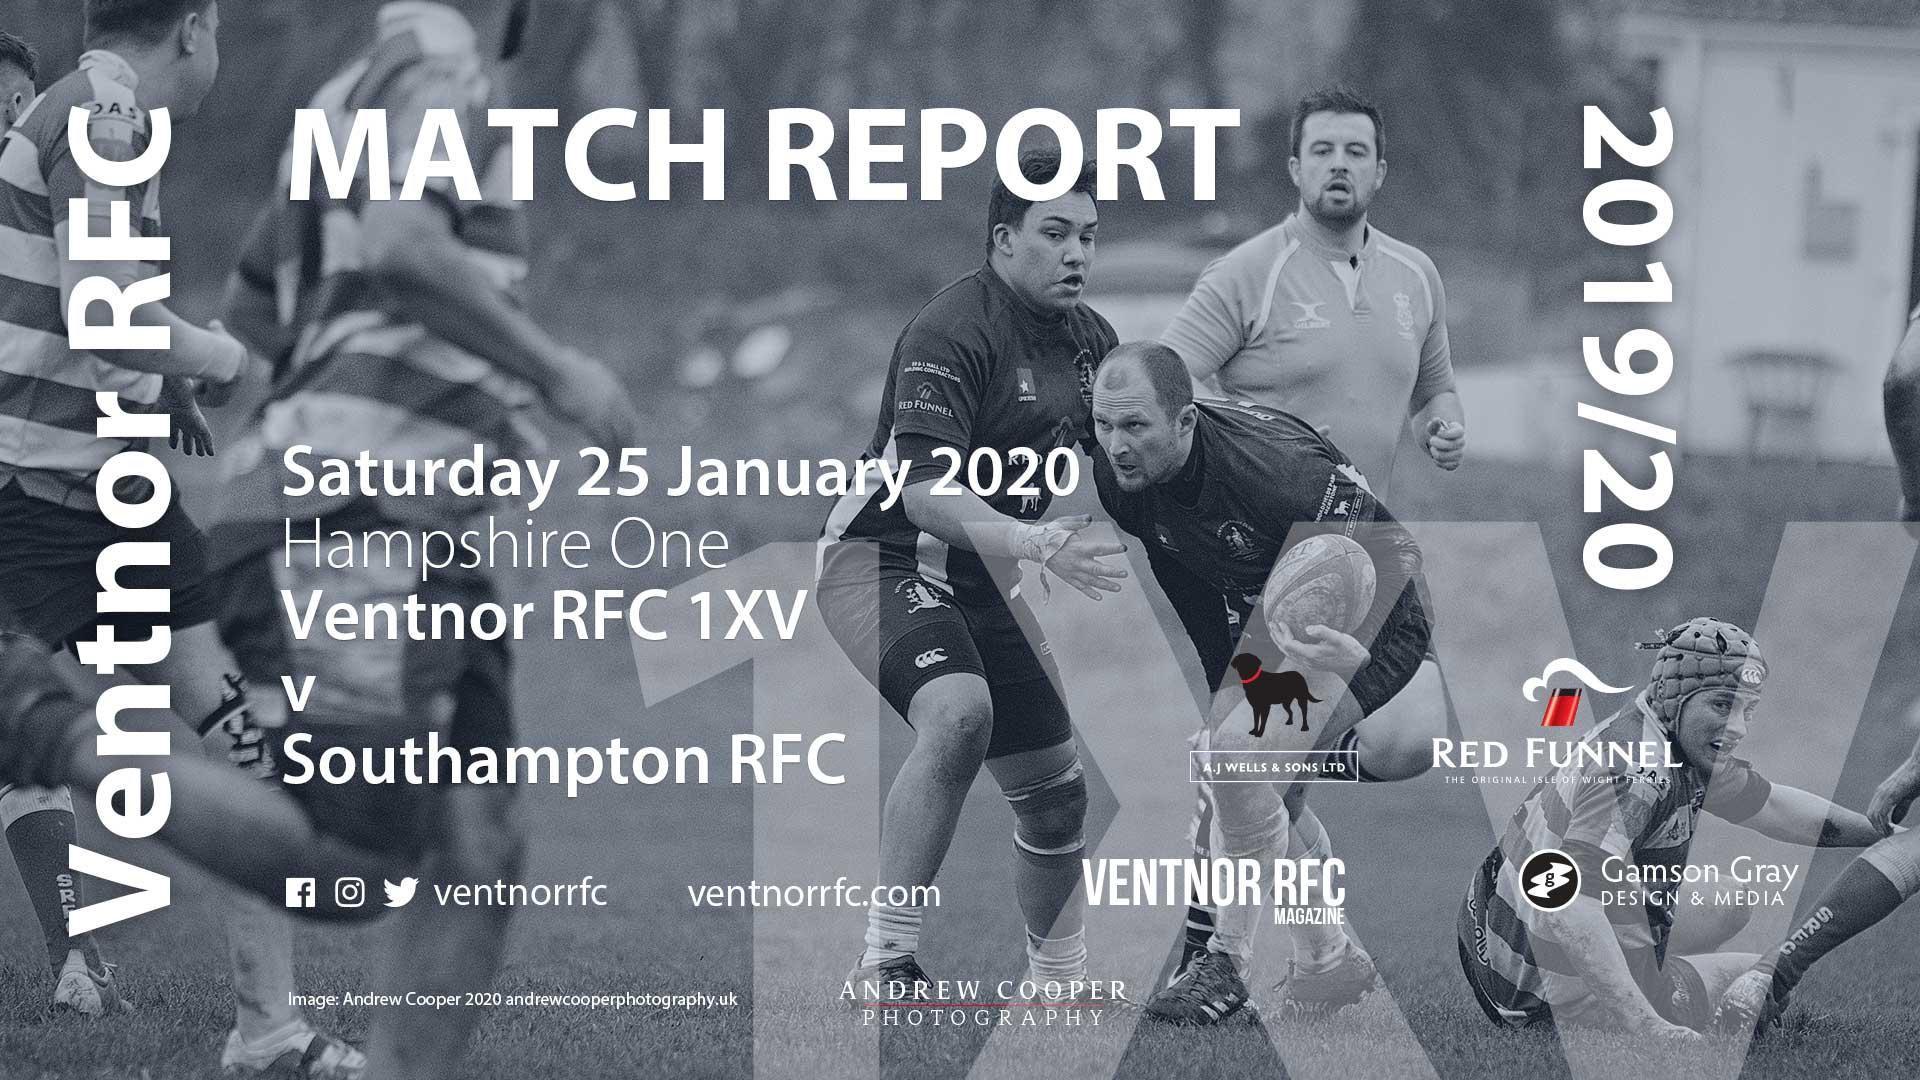 Ventnor RFC 1XV 51-22 Southampton RFC, 25 Jan 2020